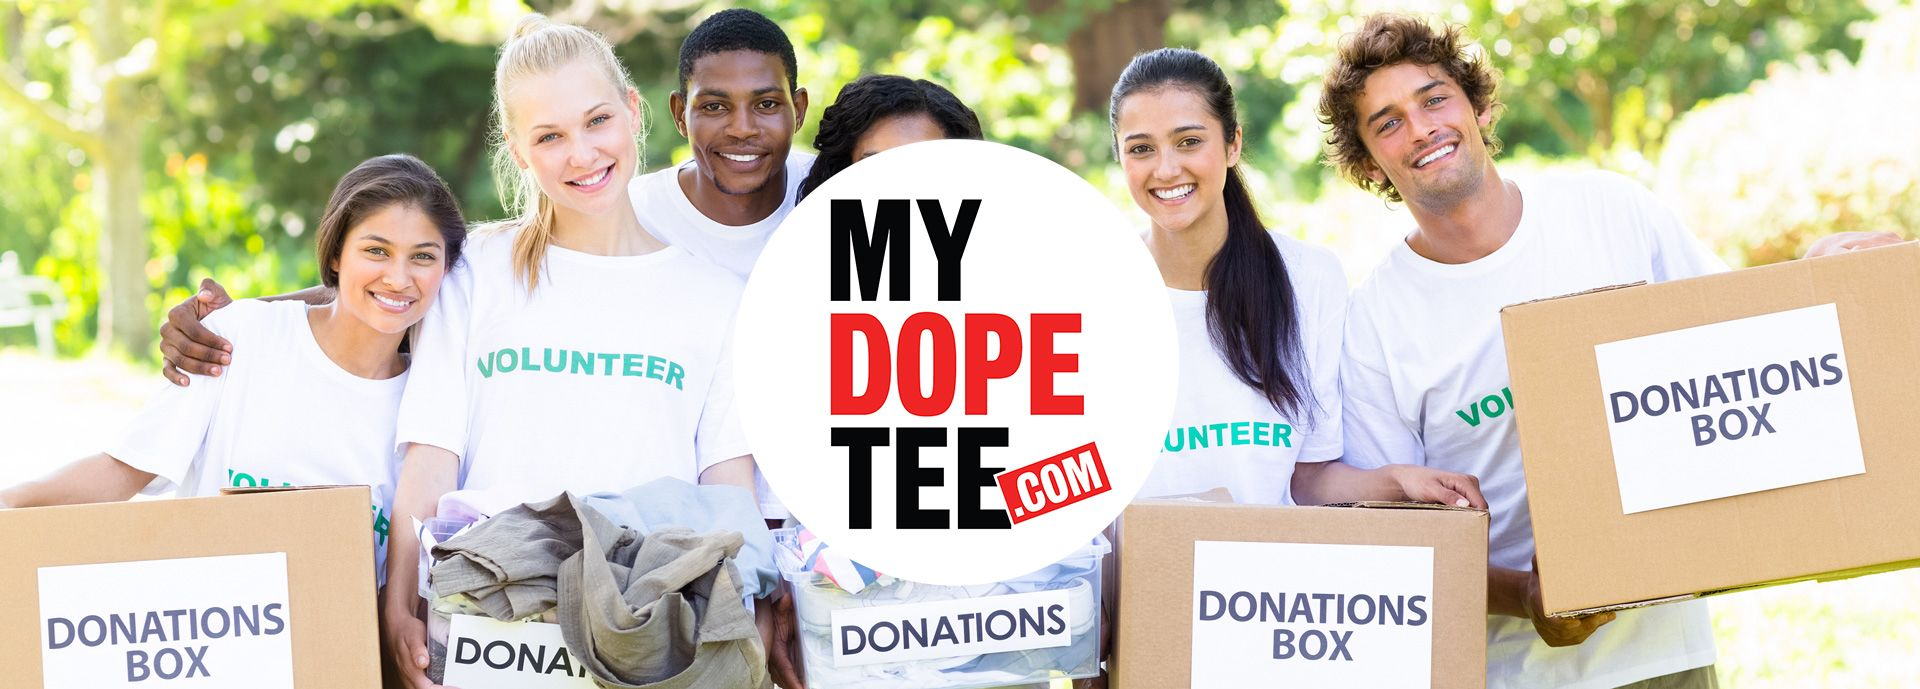 Fundraise with Fast, Custom Printed T-Shirts, Hats and more at MyDopeTee.com MyHatsDope.com